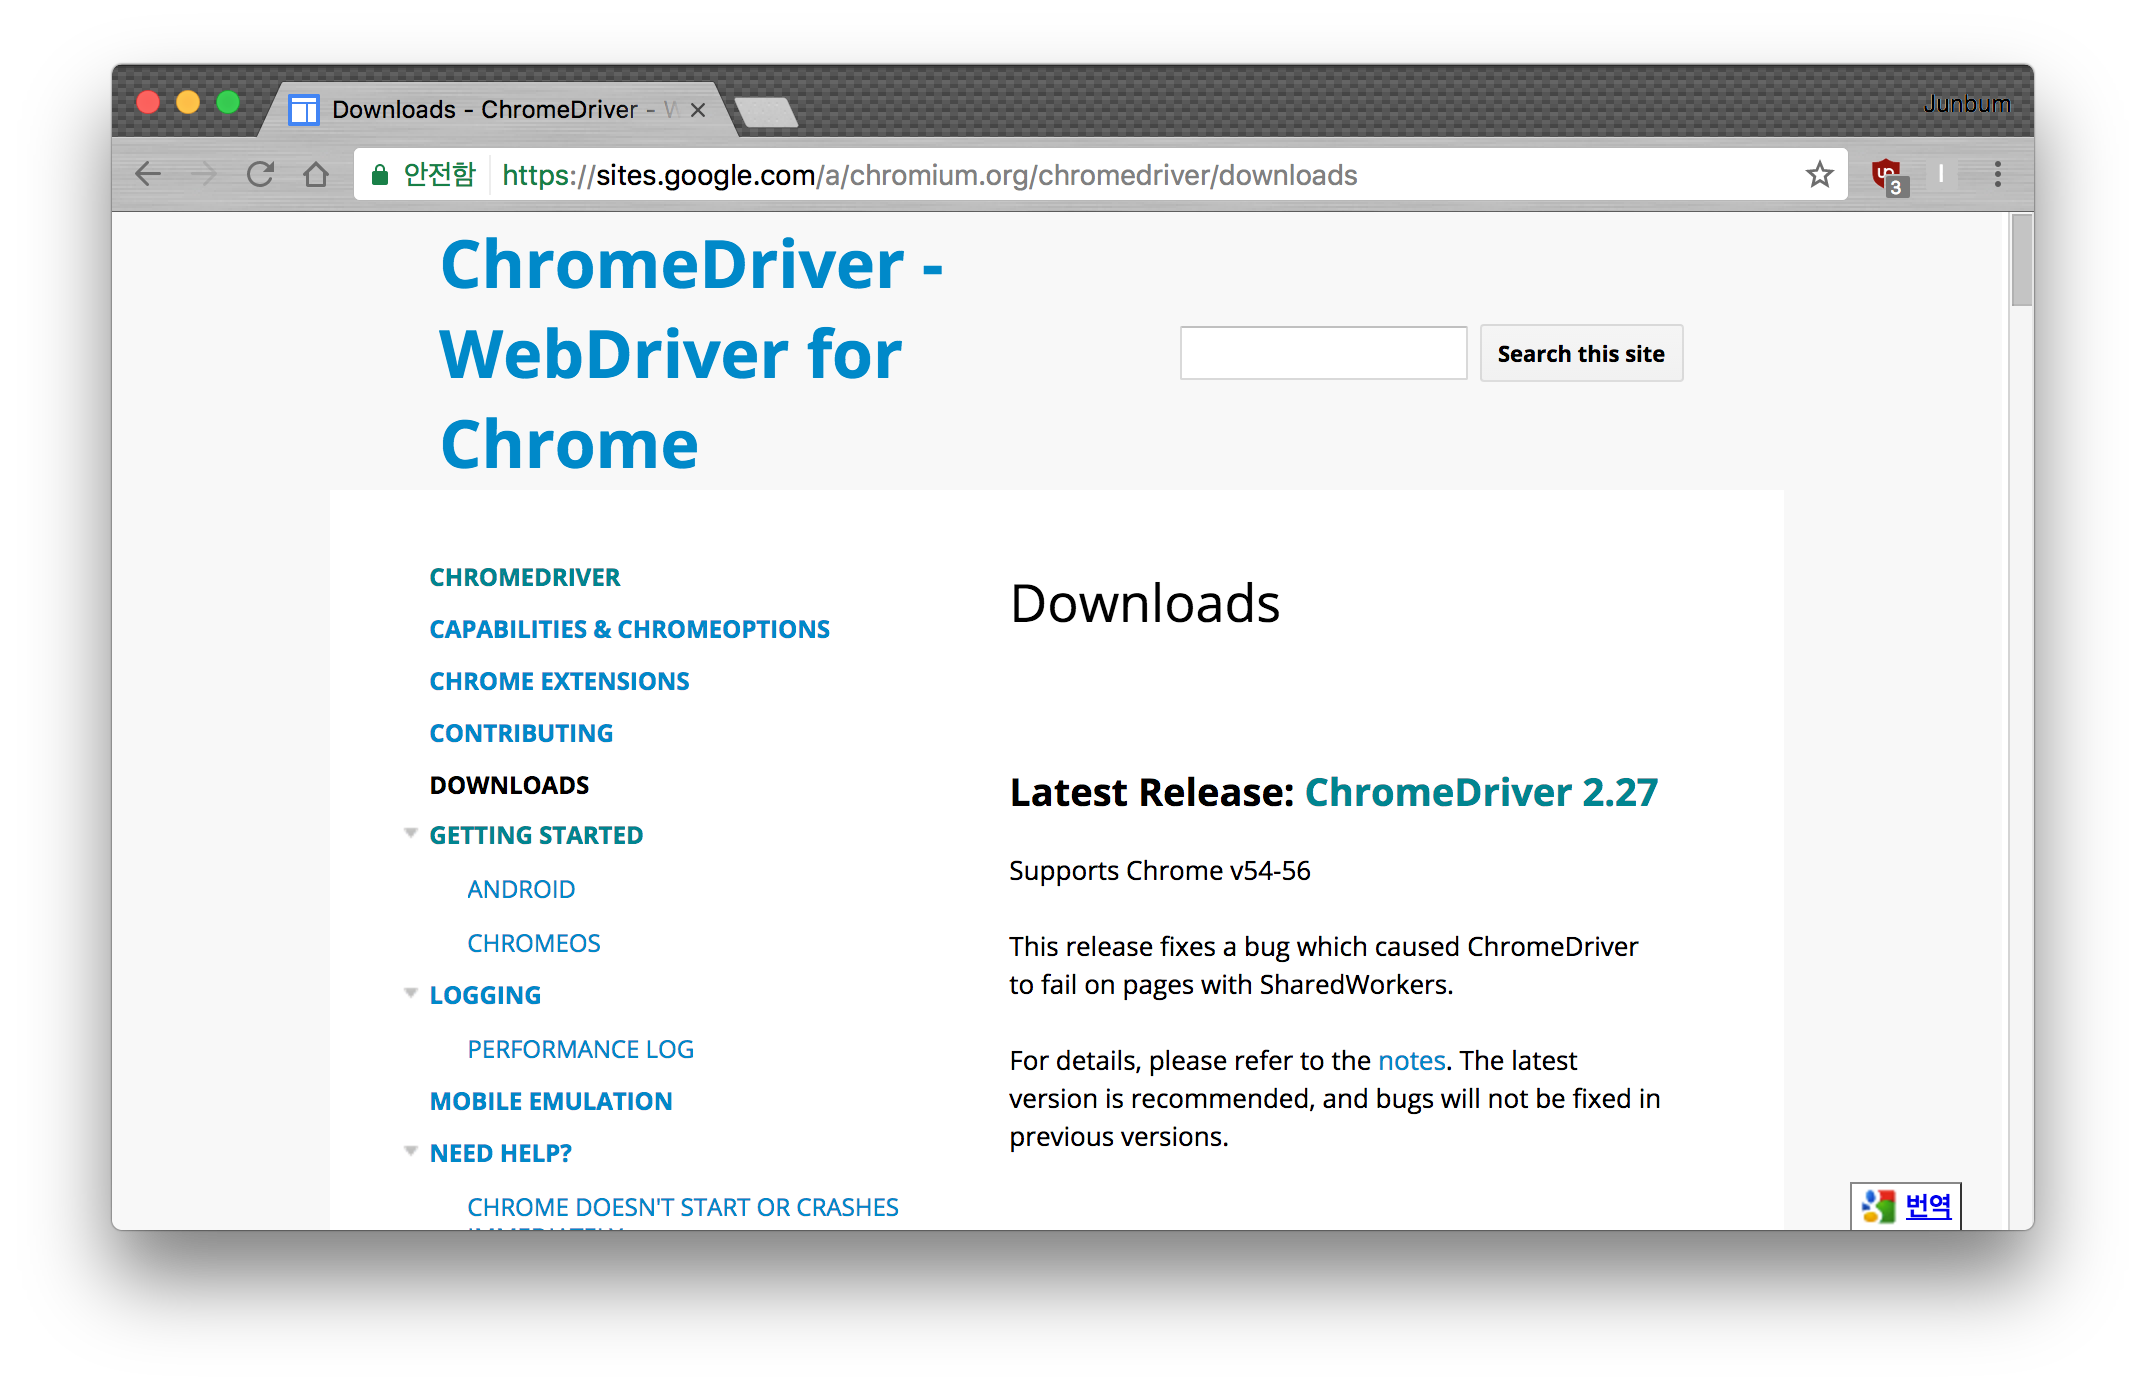 ChromeDriver Download Page